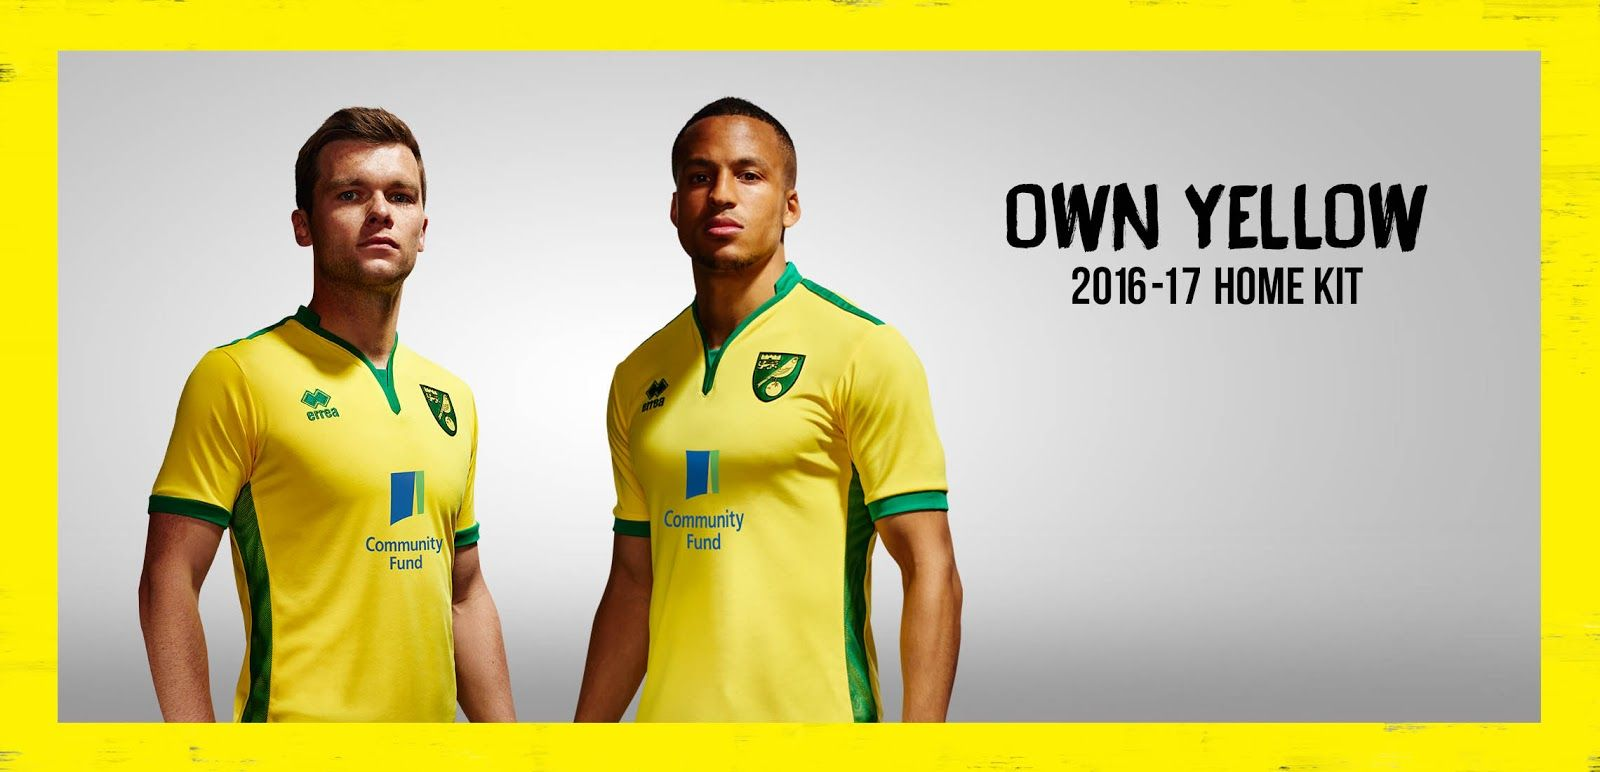 The new Norwich home kit introduces a modern, stylish and retro feel.